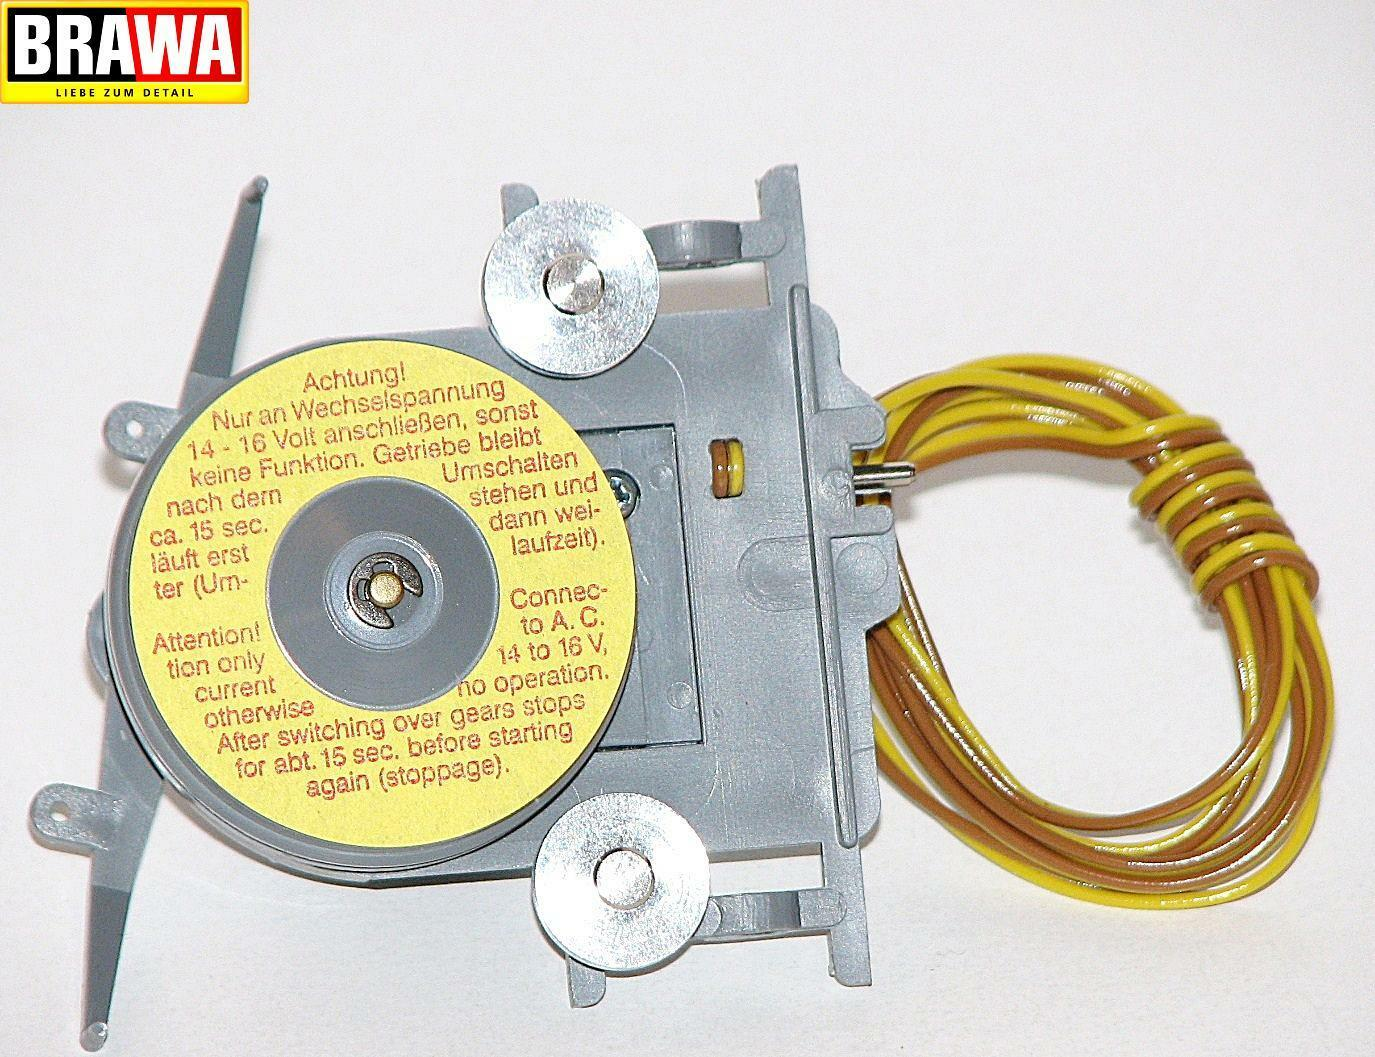 Brawa H0 6253 Cable Car Head Piece for Mountain Station with Motor - New +Box